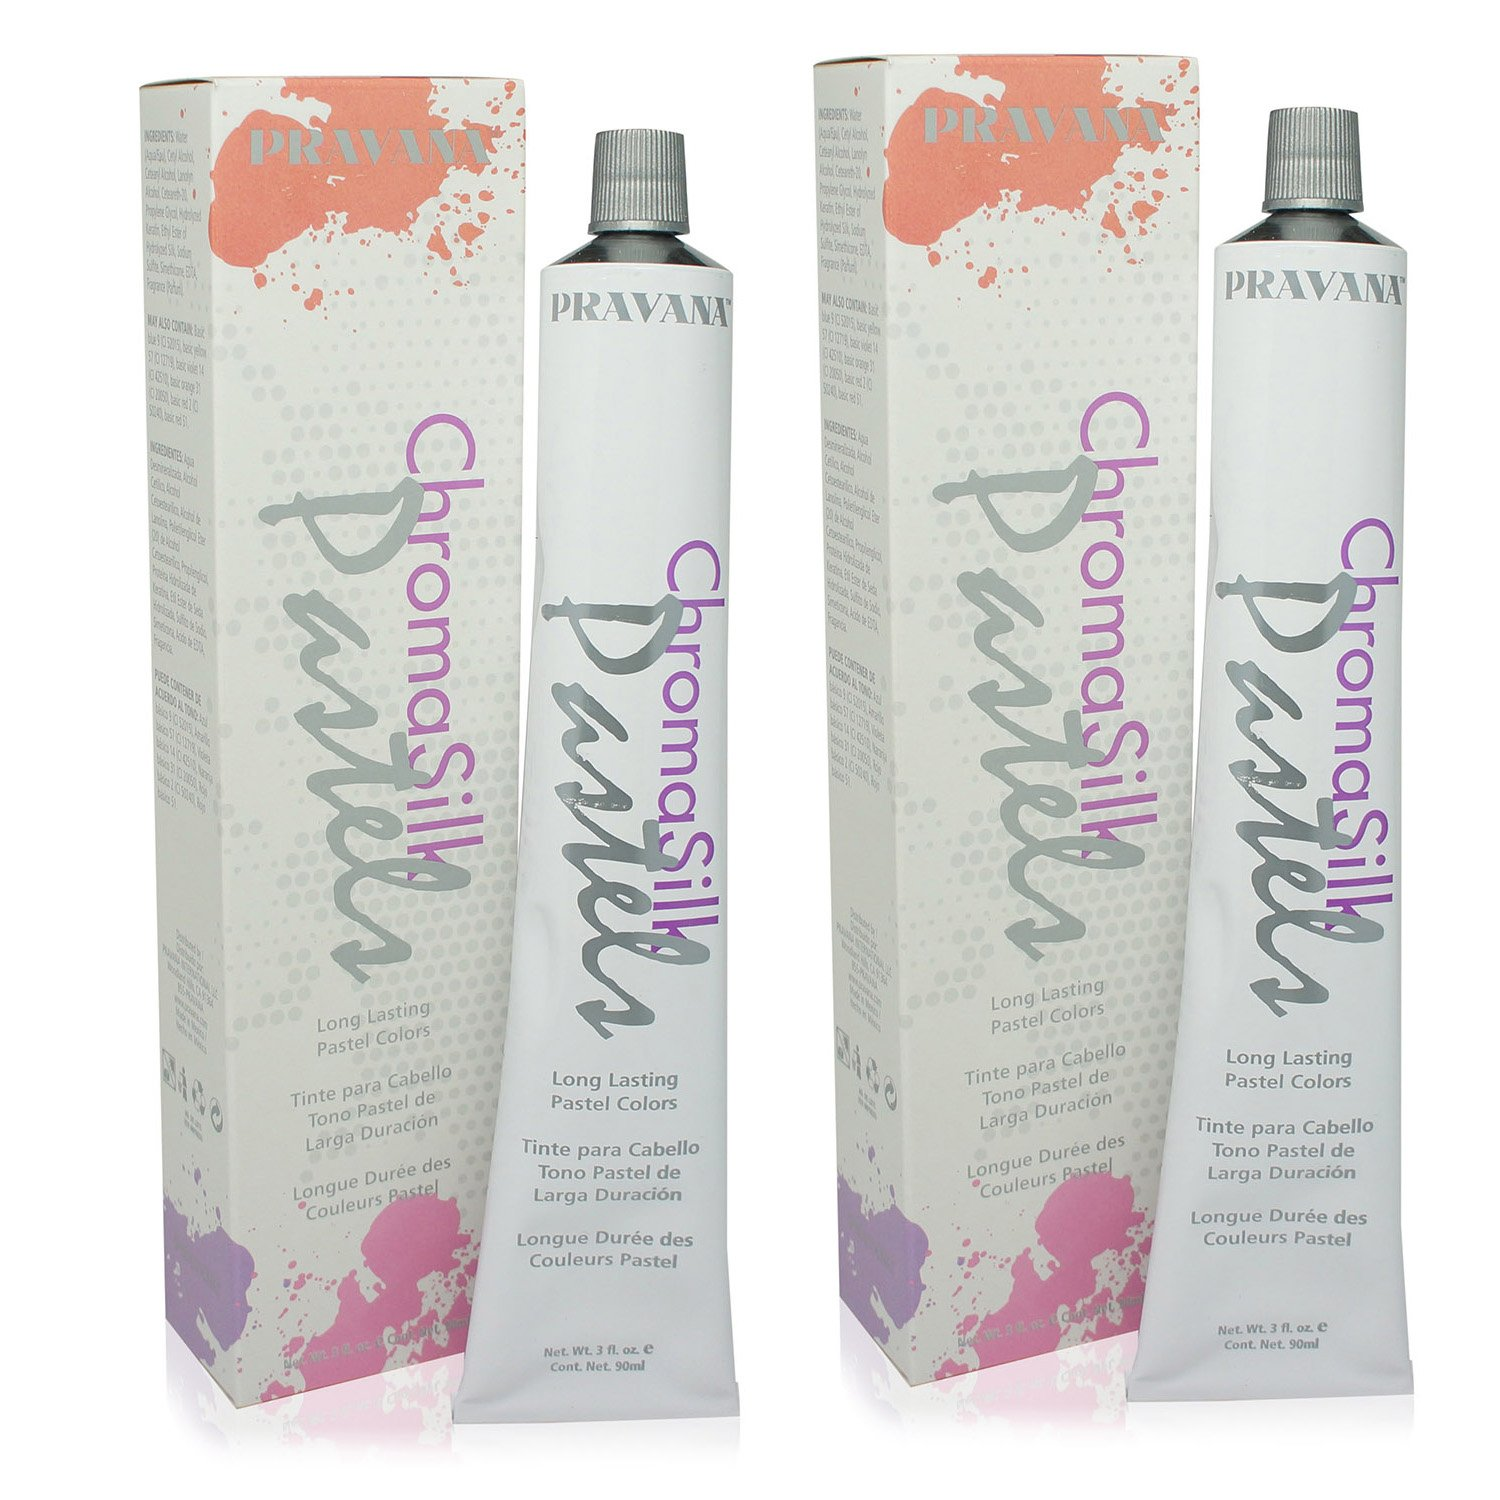 Pravana ChromaSilk Pastels (Pretty in Pink), 3 Fl 0z - 2 Pack